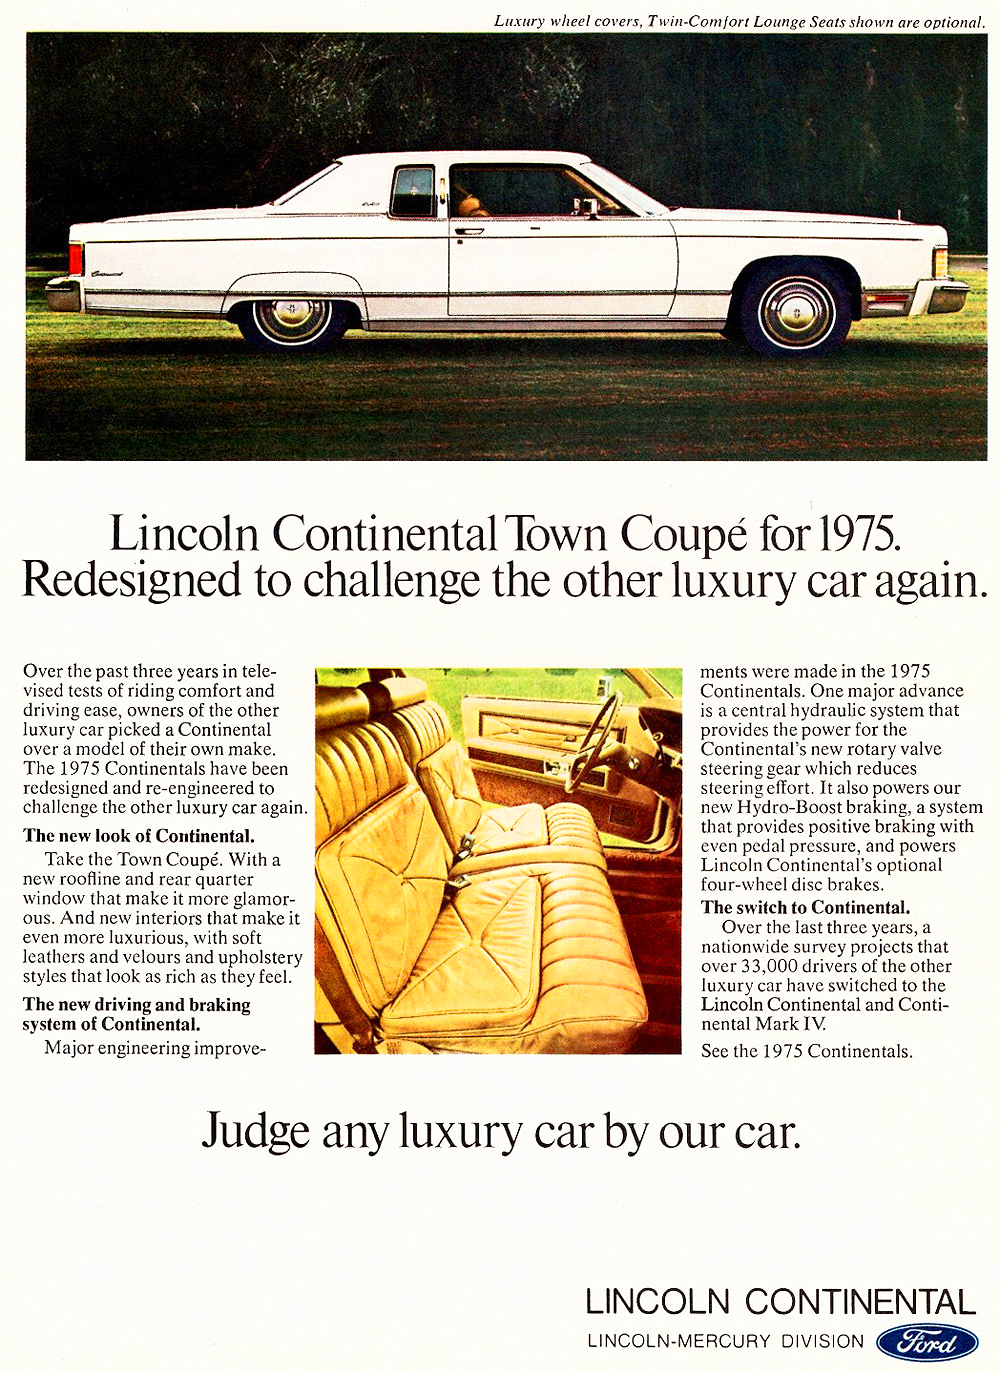 1975 Lincoln Continental coupe ad | CLASSIC CARS TODAY ONLINE